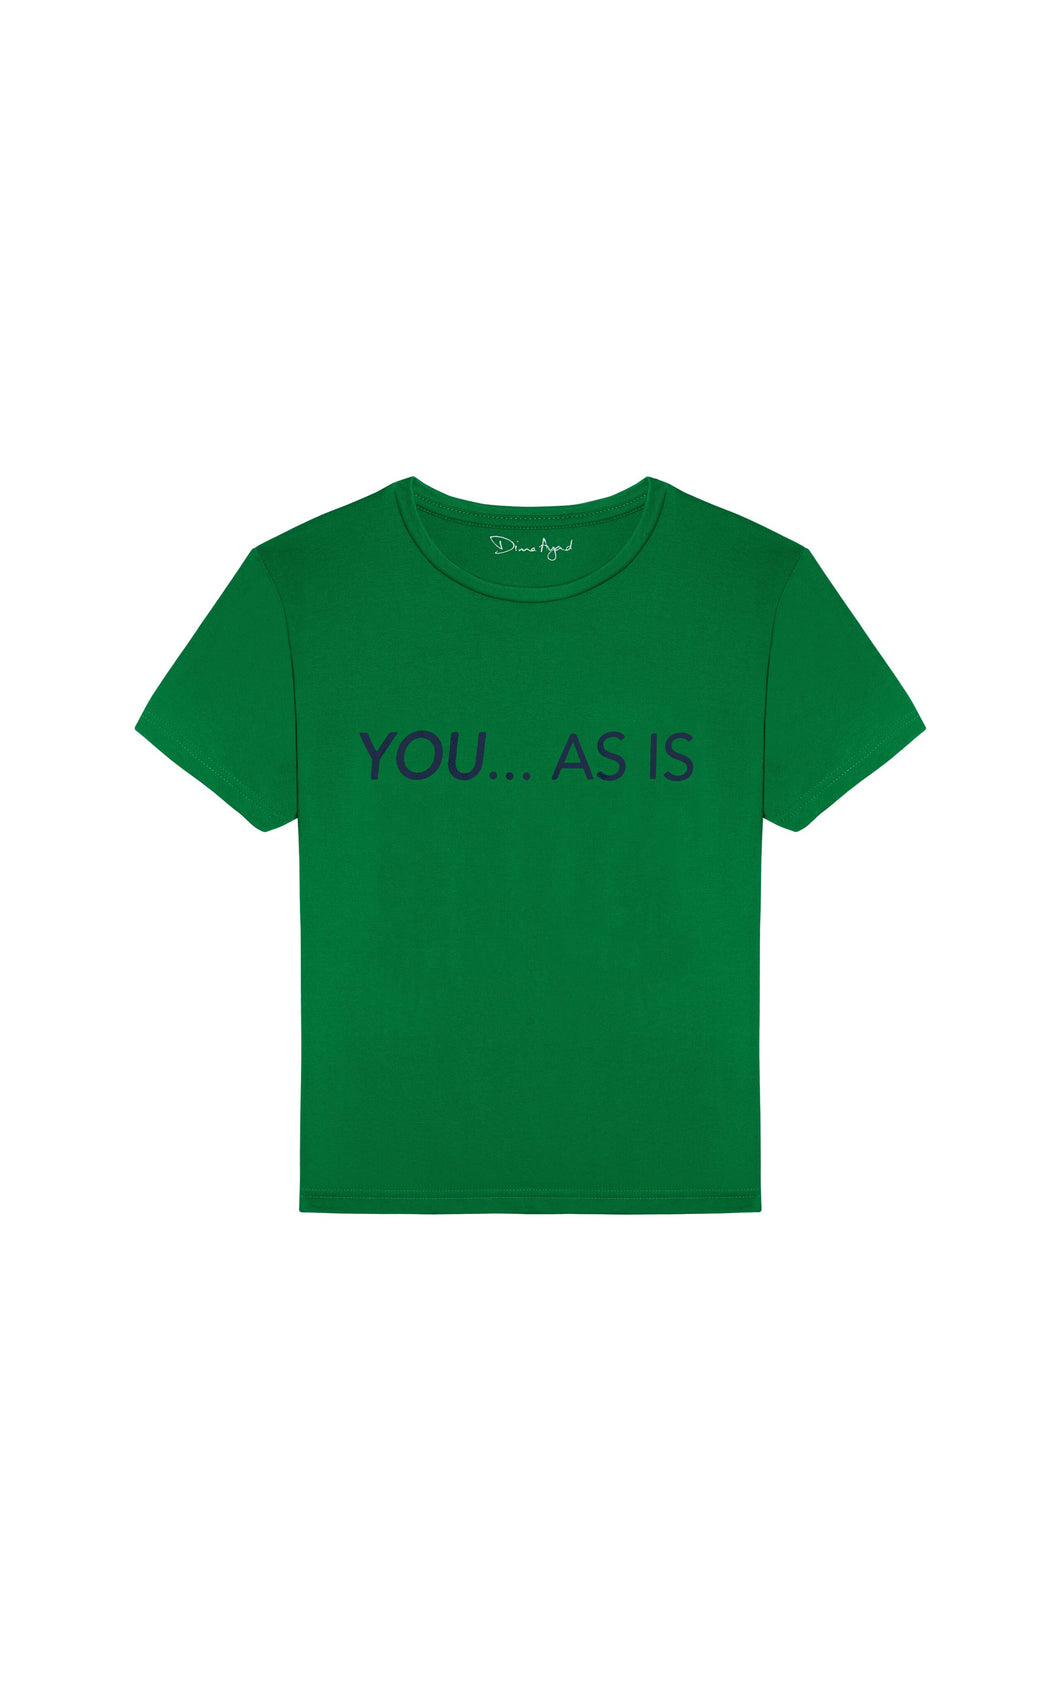 YOU...AS IS Green T-shirt with Navy Blue Text, English